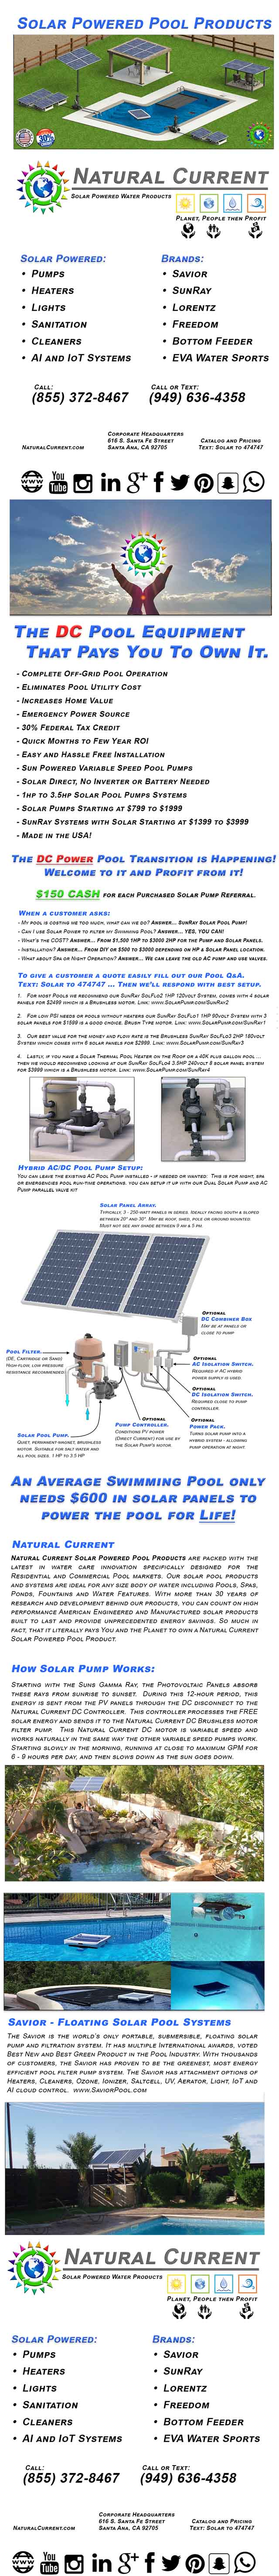 Sunray Solar Pool Pumps Powered Residential Diagram Also Off Grid Power As Well Electrical Commercial Energy Solutions Engineering